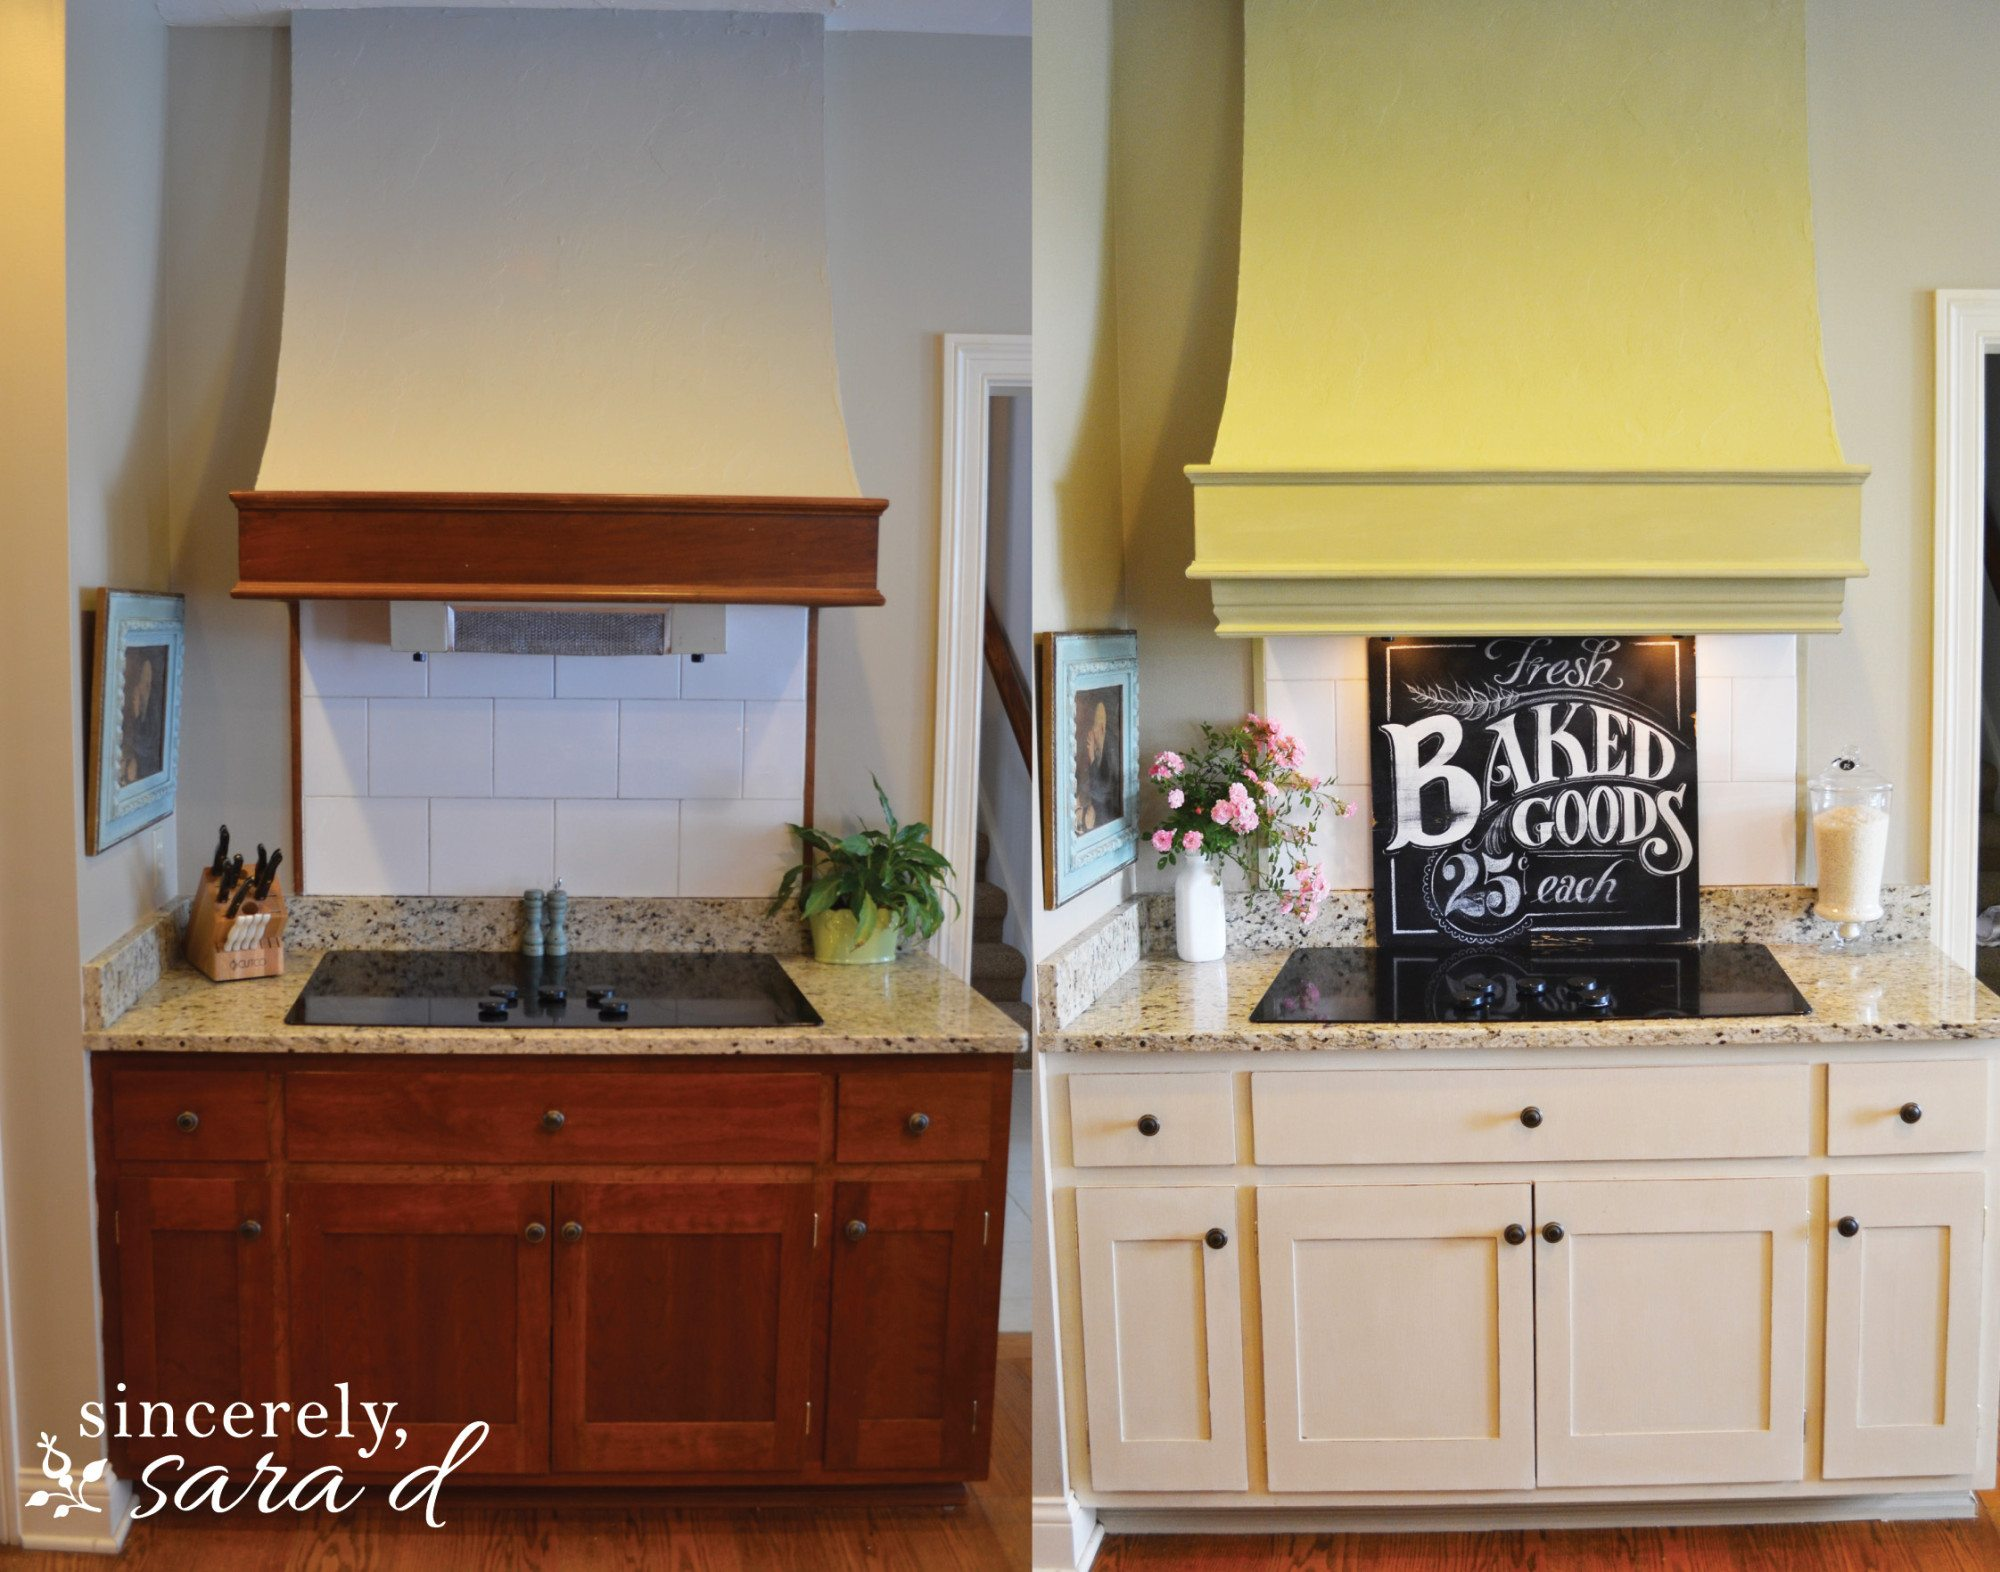 painting kitchen cabinets final edition because im out of cabinets to paint chalk paint kitchen cabinets BeforeANDafter